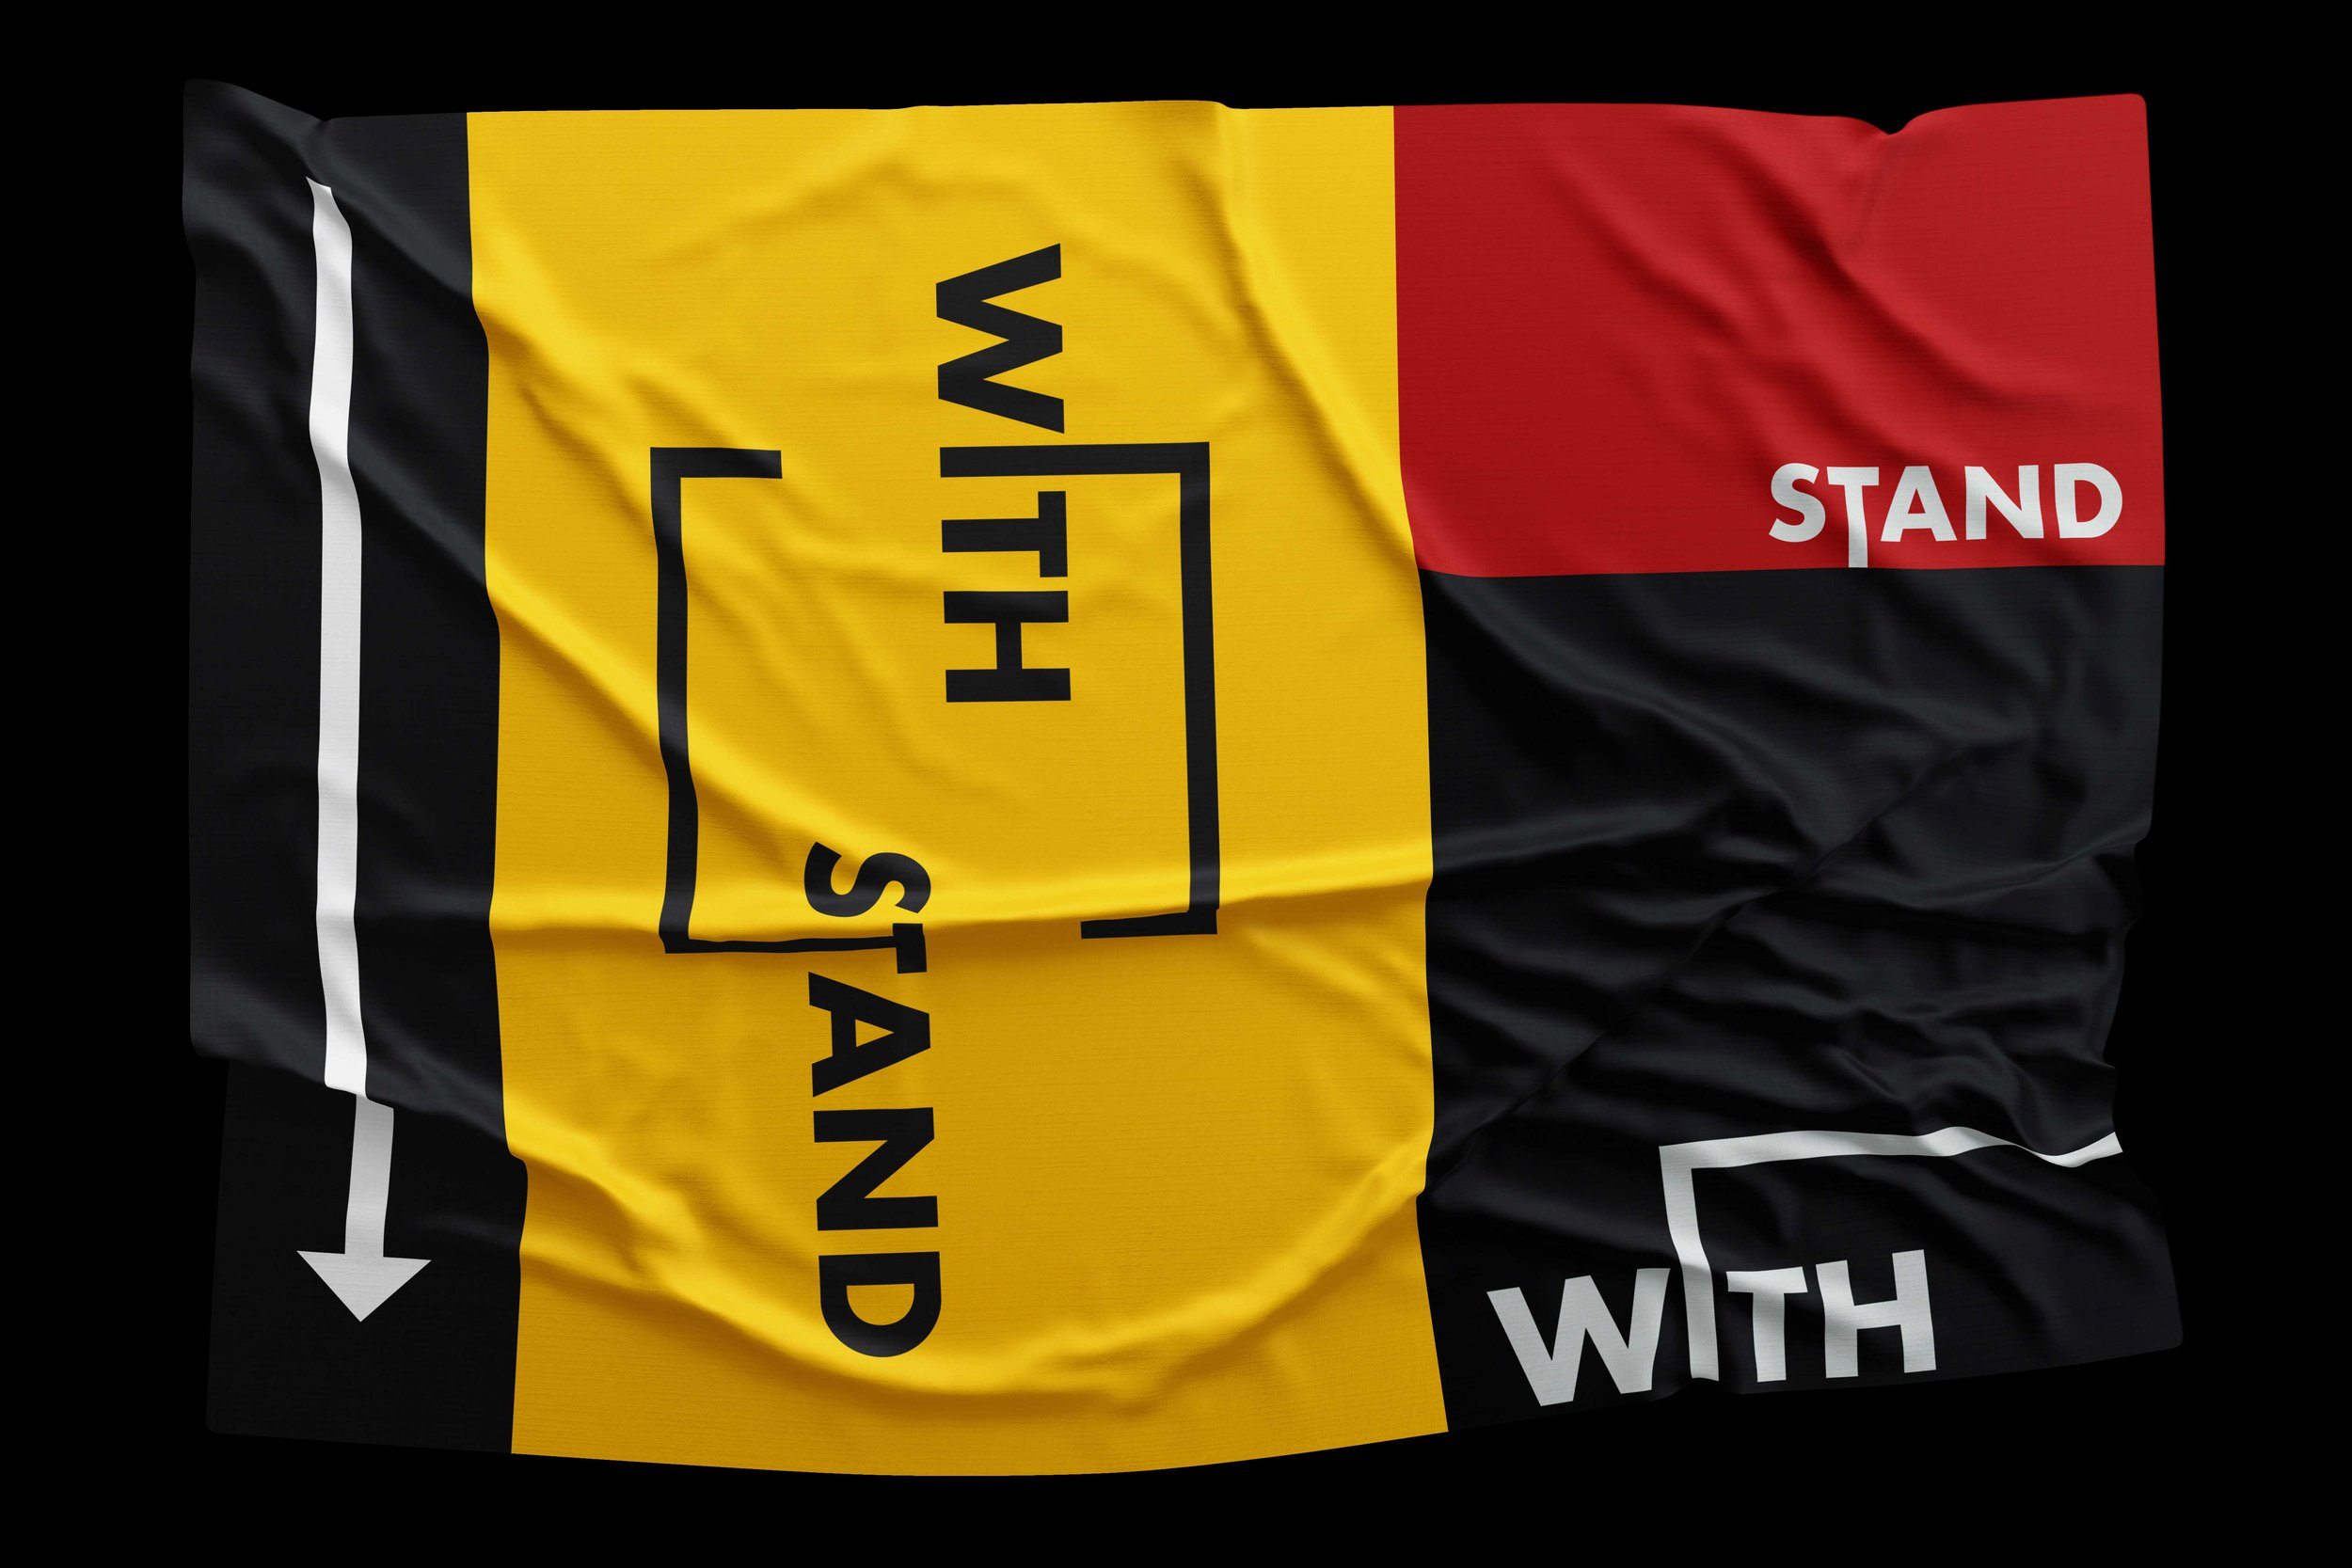 WithStand Flag